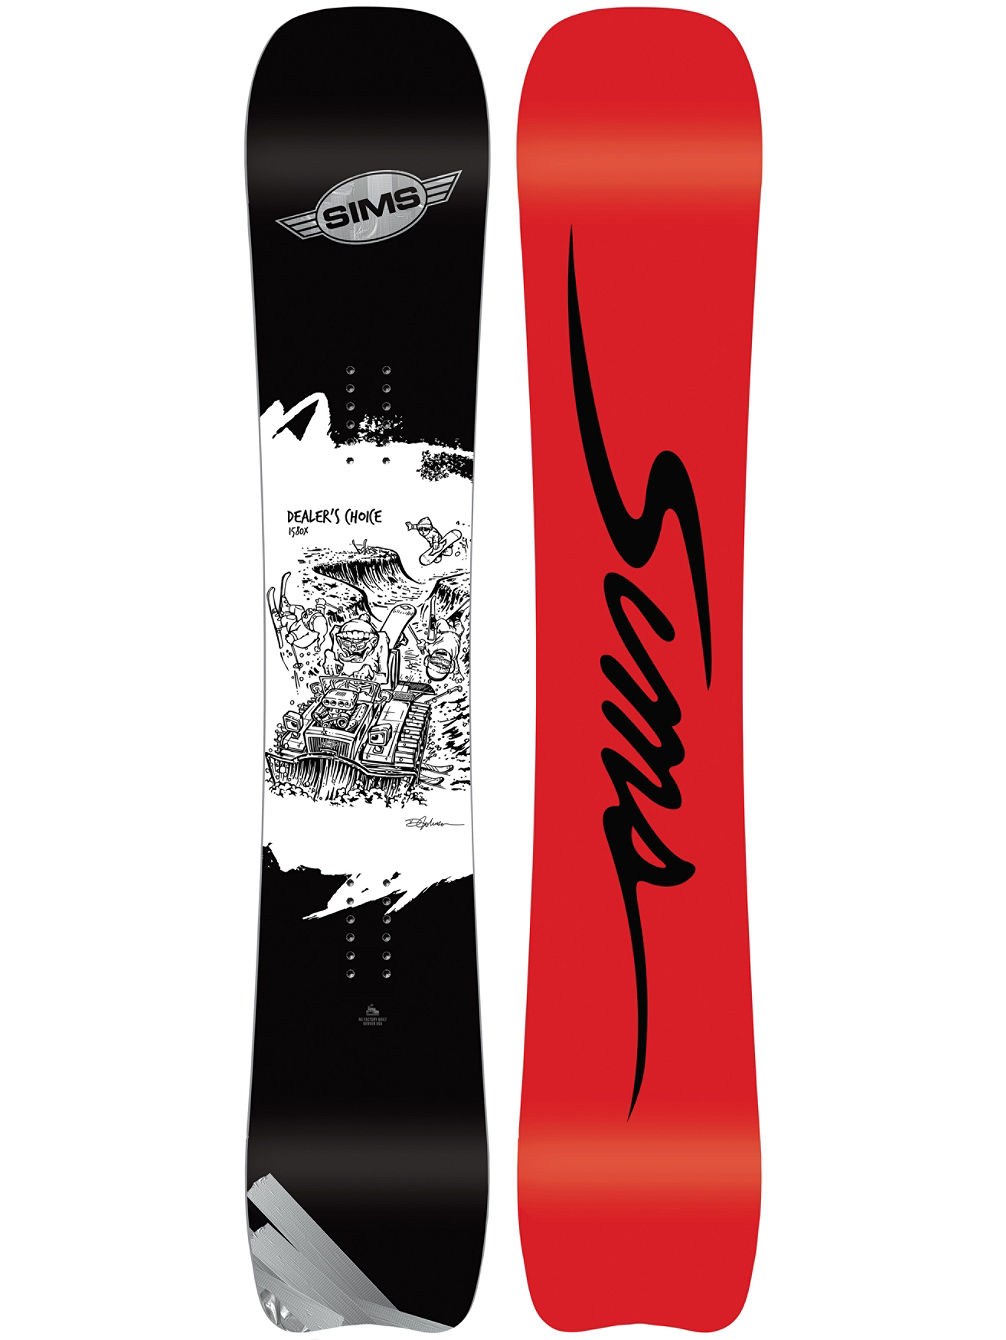 Dealers Choice 157 2018 Snowboard